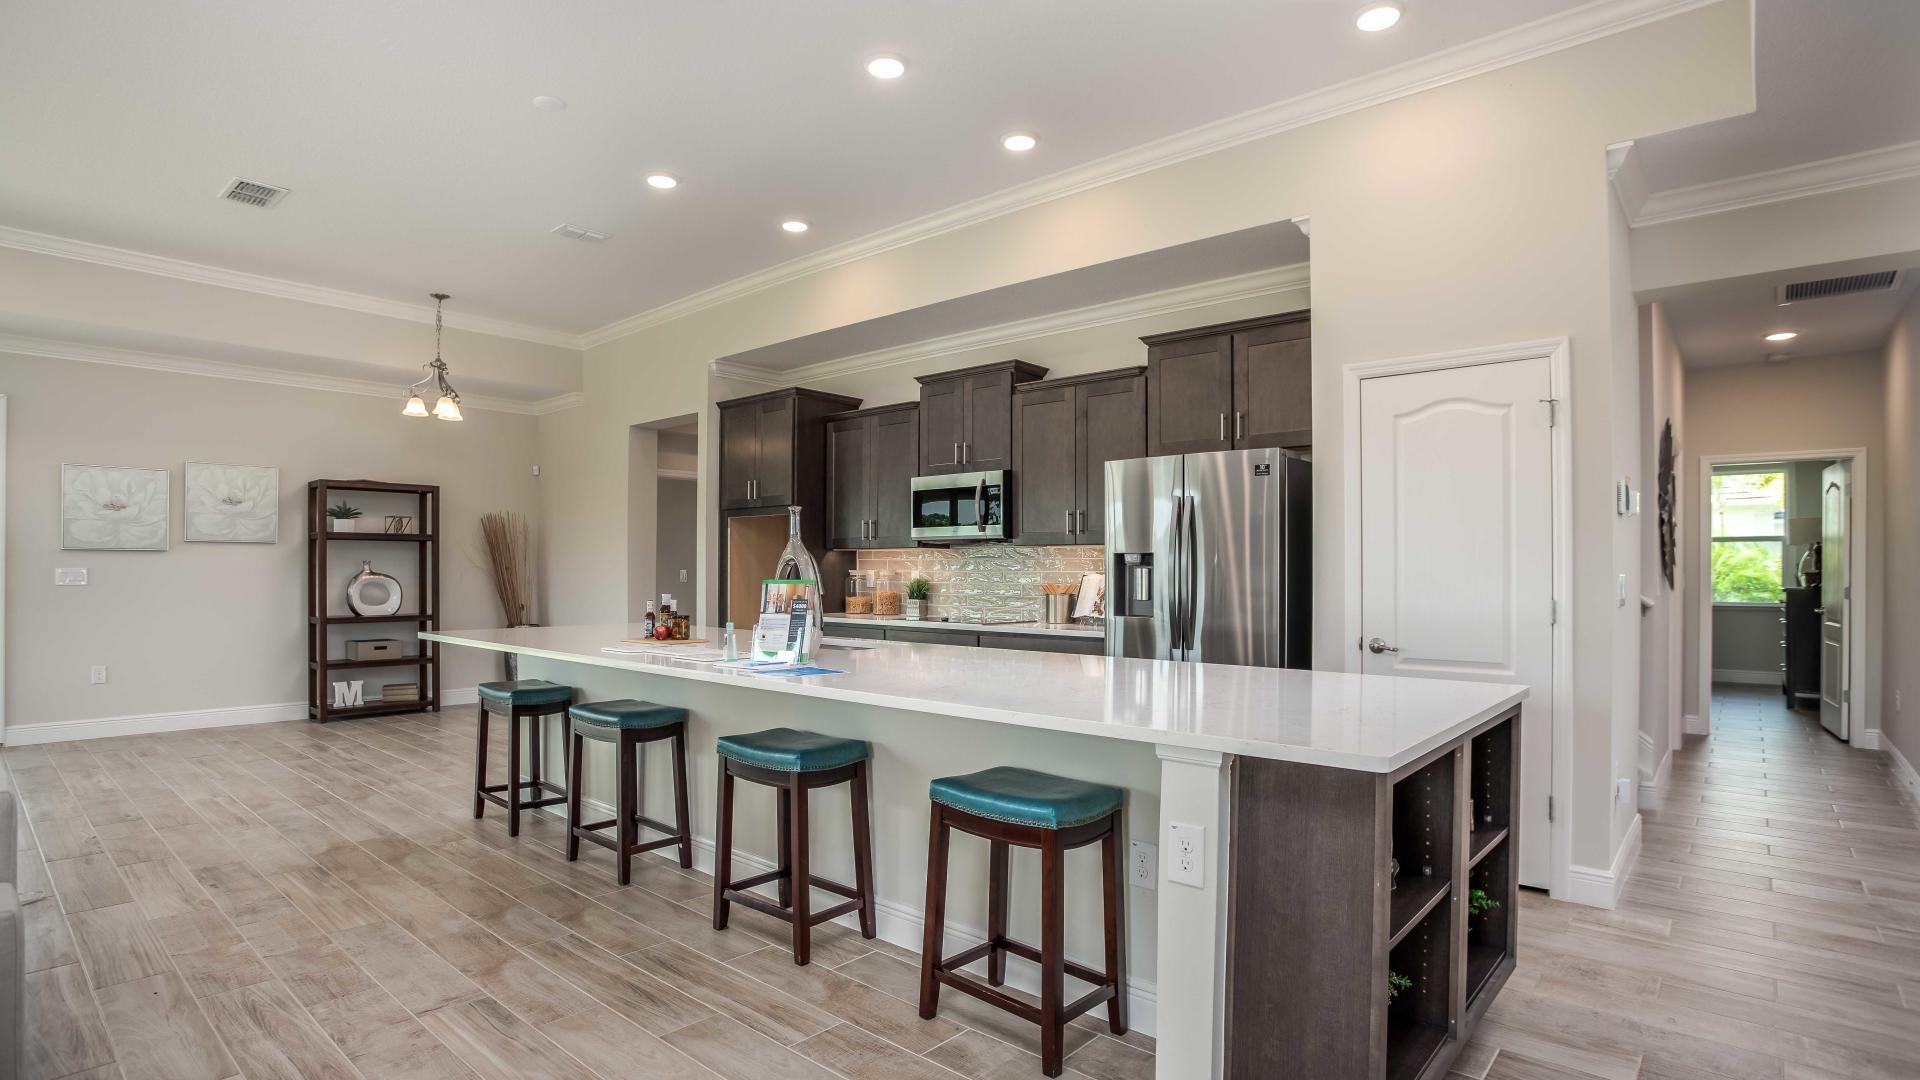 Kitchen featured in the Sienna By Maronda Homes in Melbourne, FL